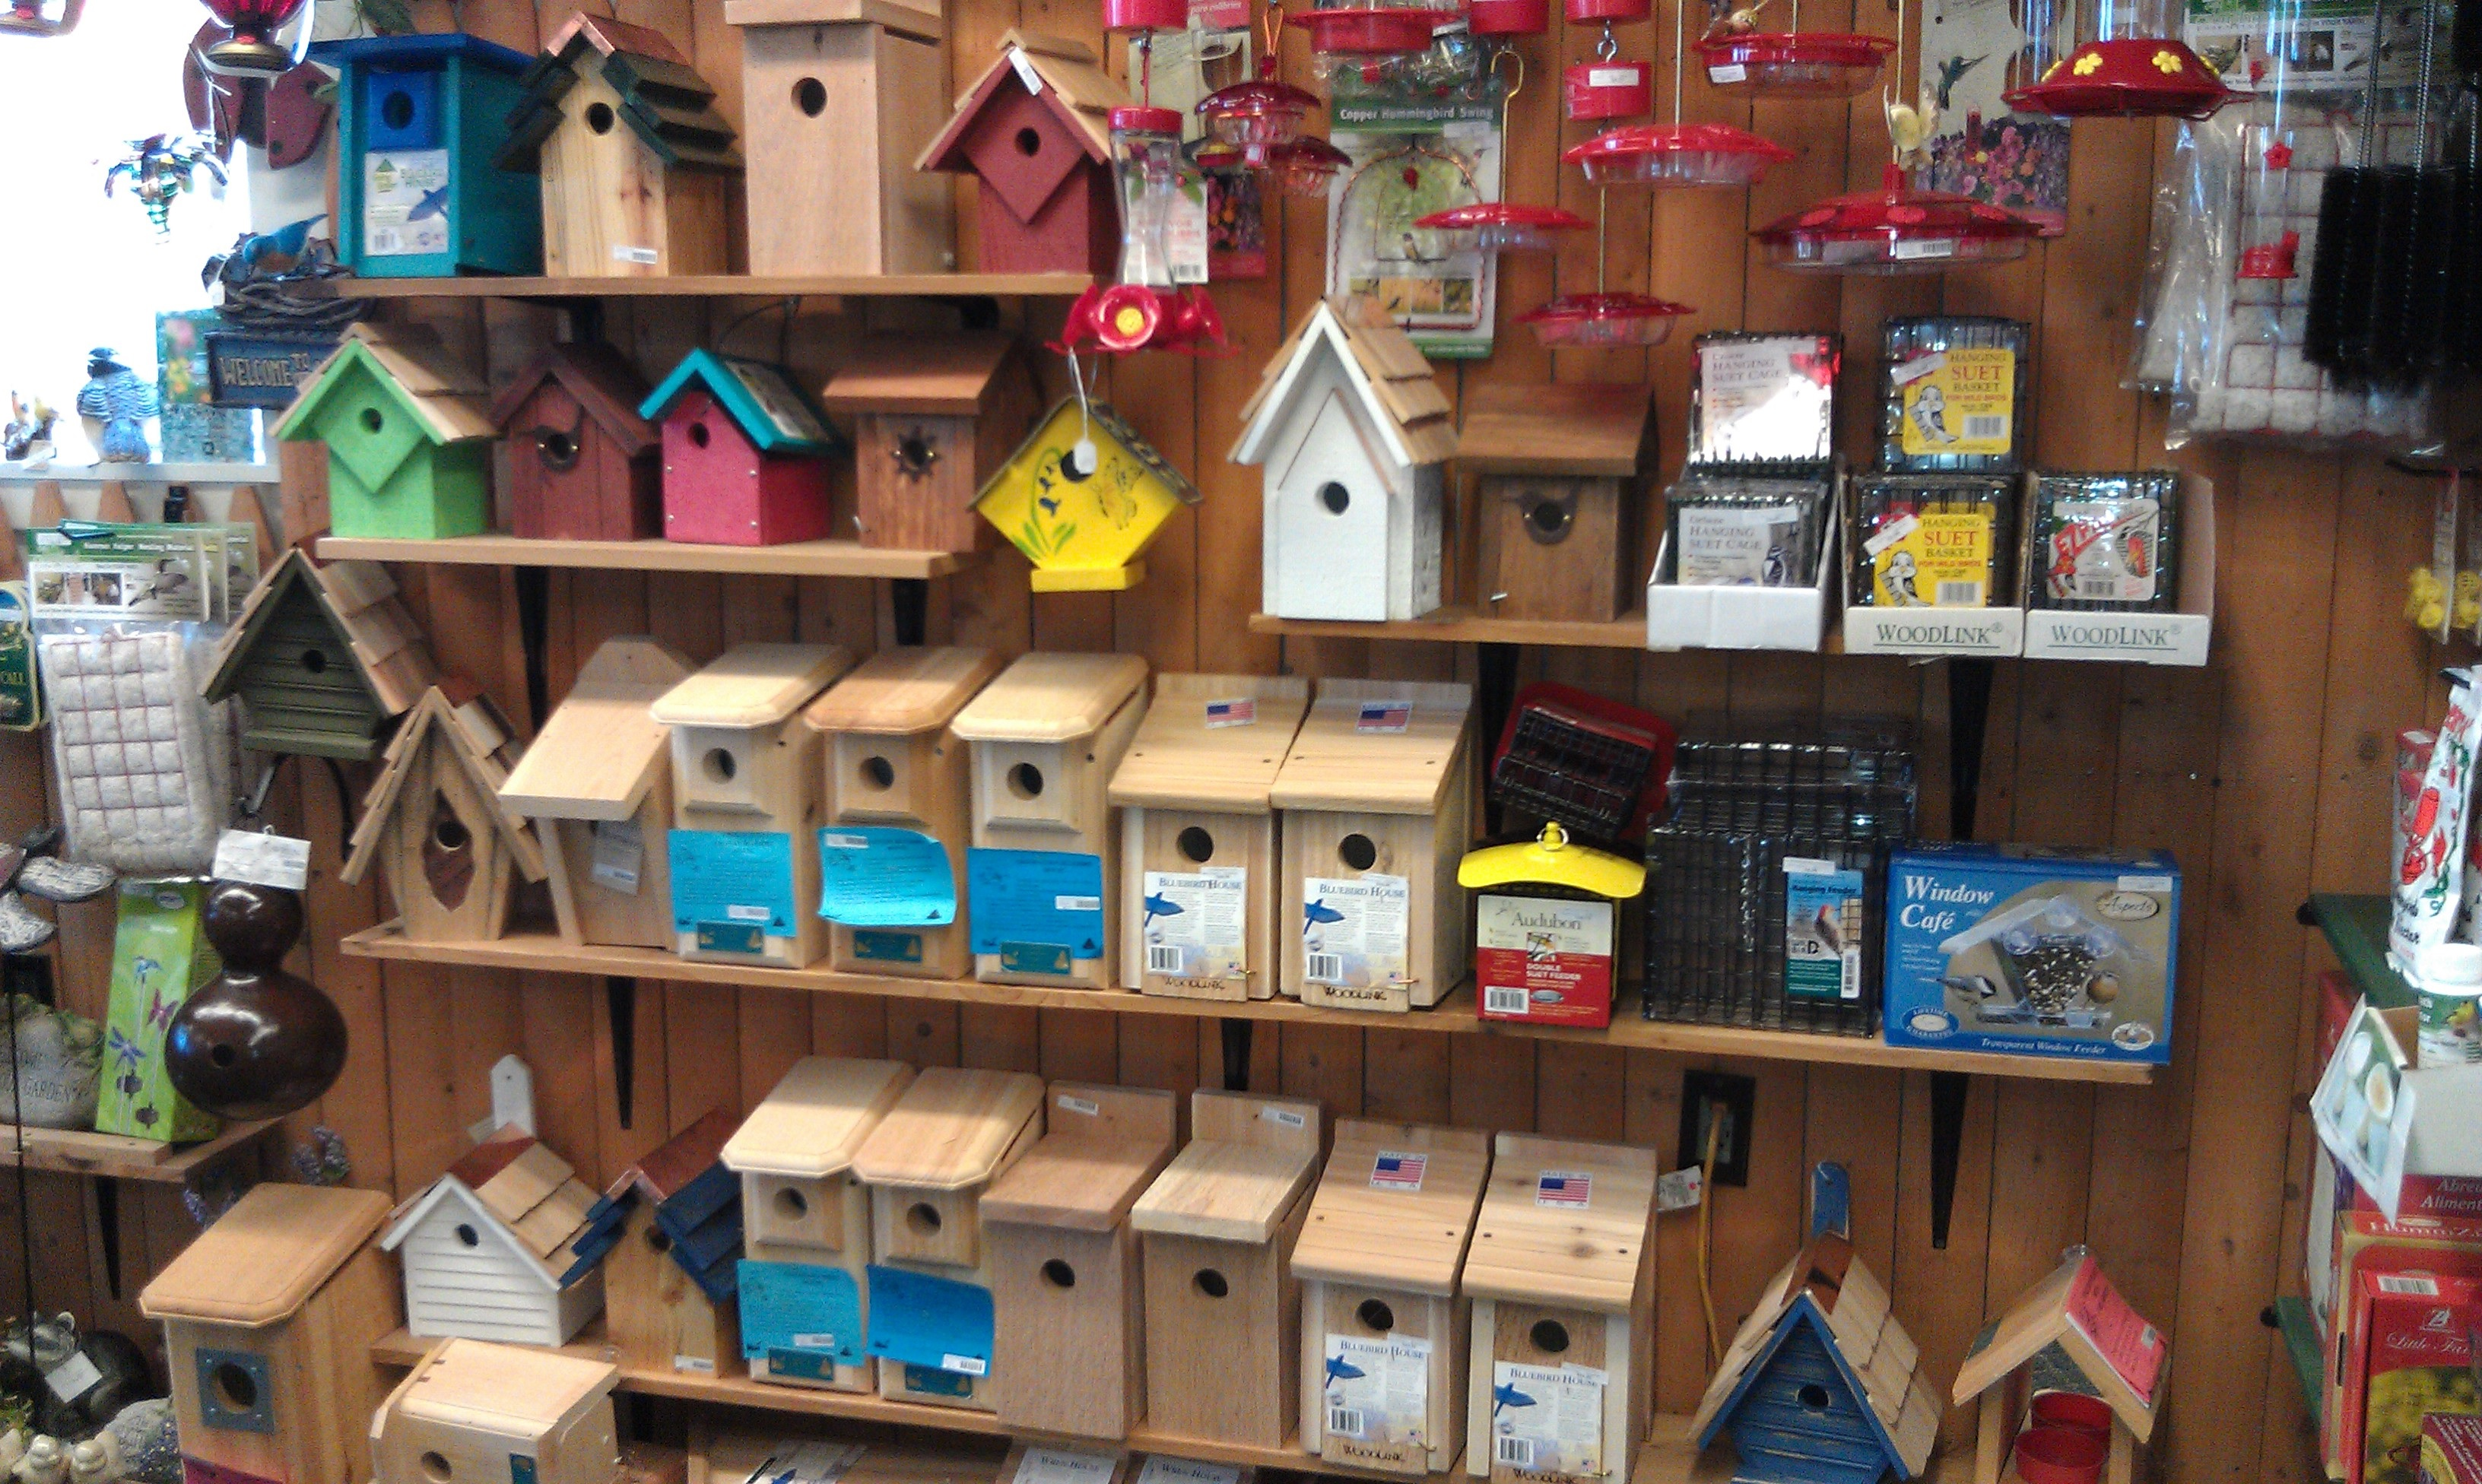 birds and beyond inc rh birdsandbeyondinc com birdhouse store in plymouth mi birdhouse store near me